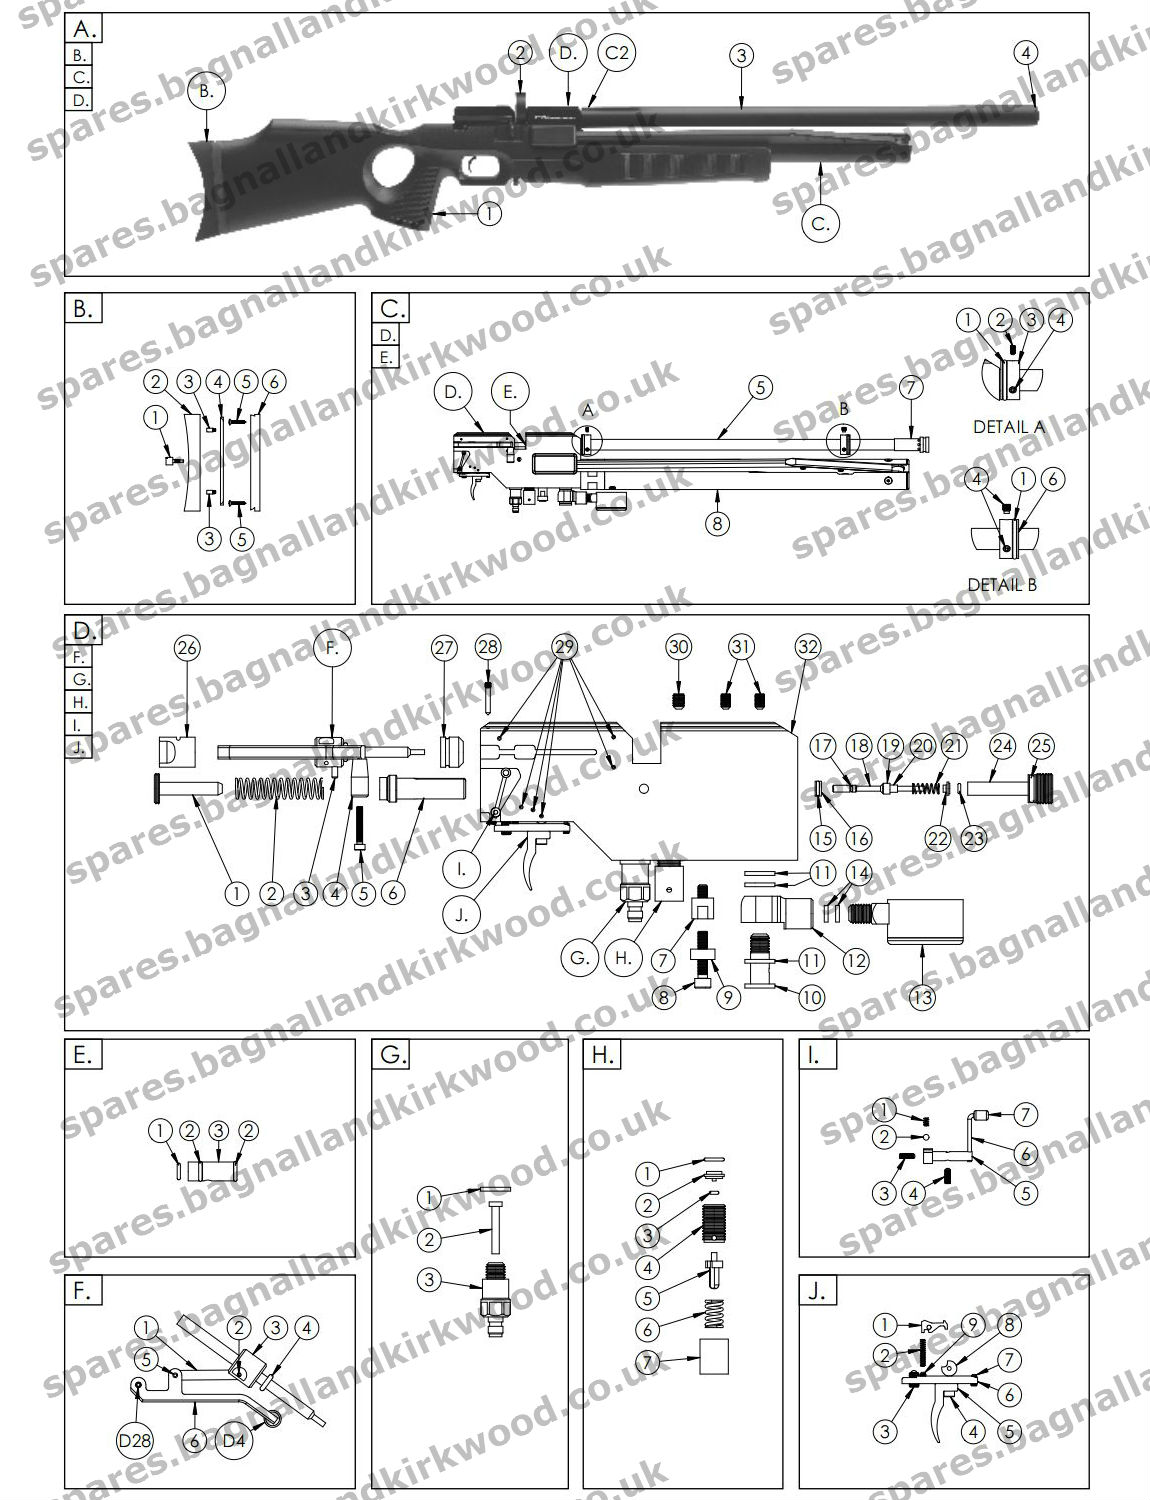 Webley Air Rifle Parts | Wiring Diagram Database